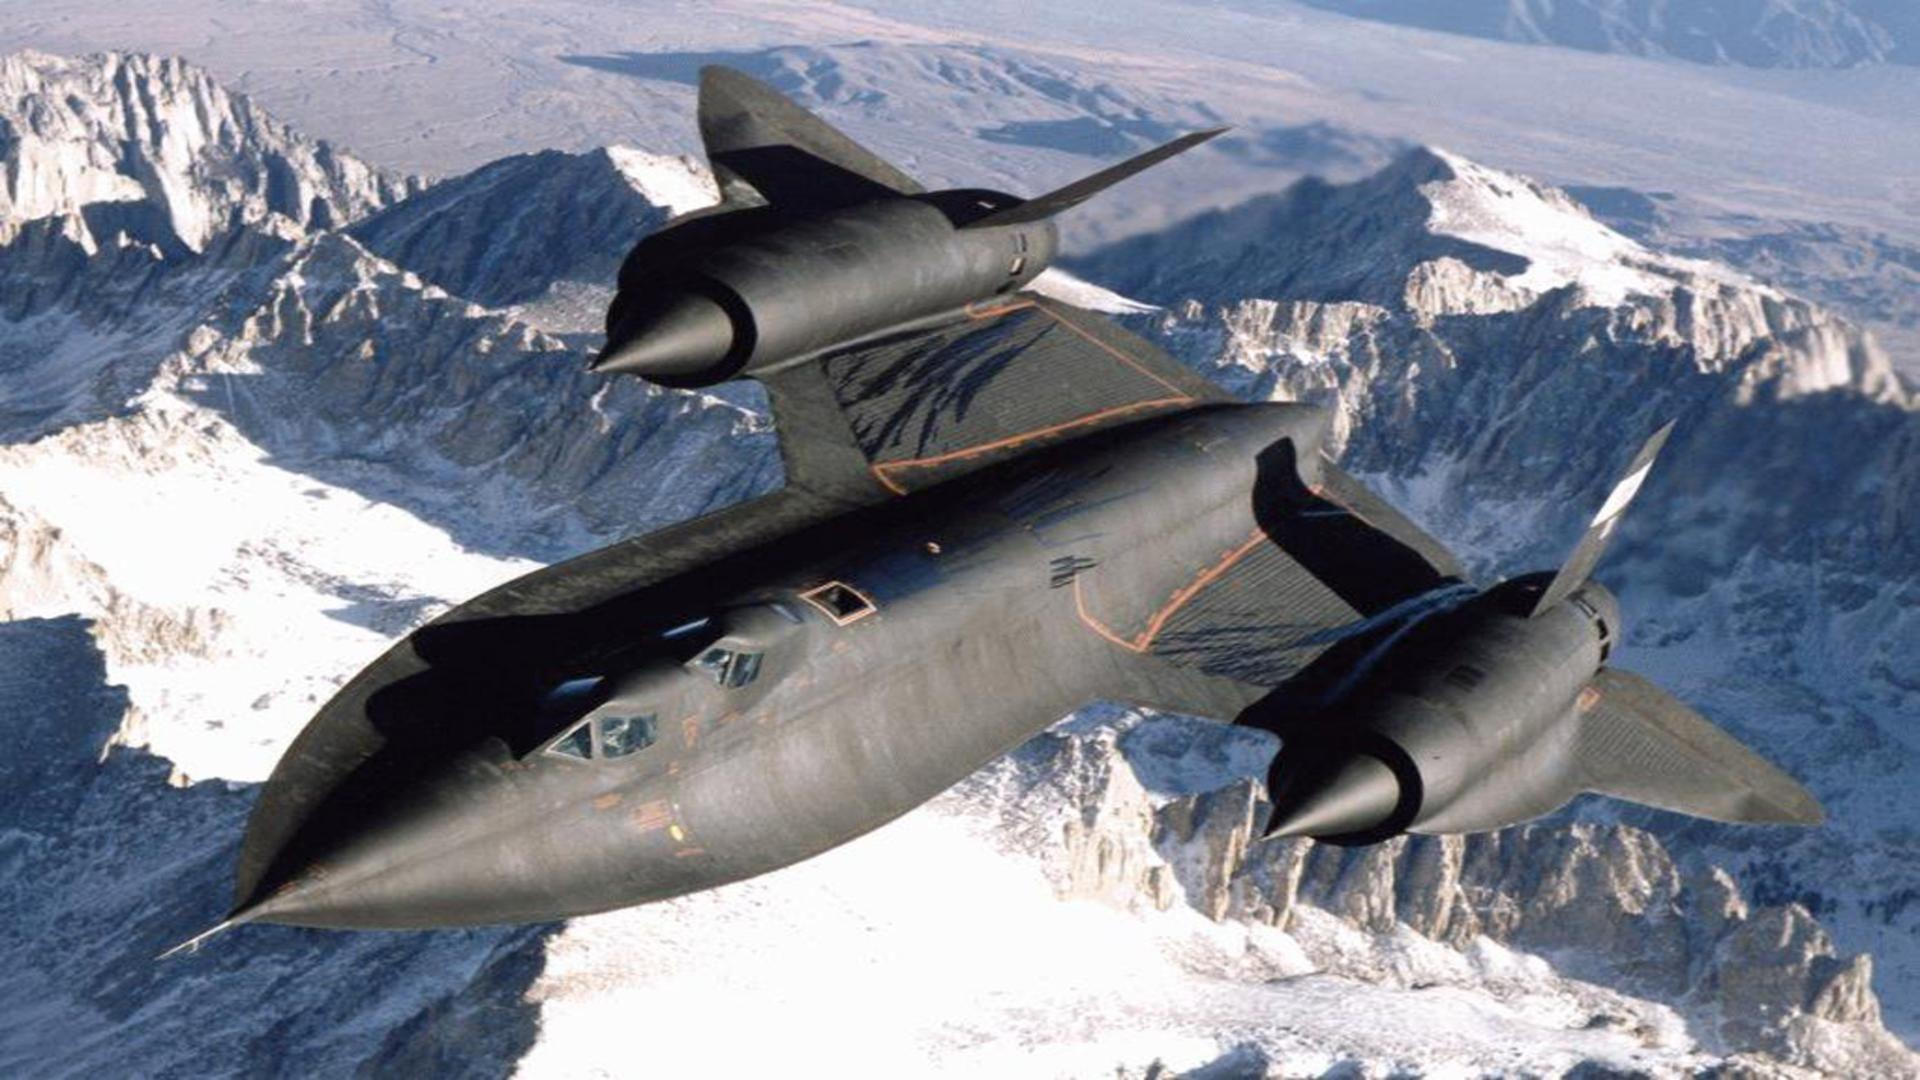 Sr 71 Blackbird Wallpapers on Nasa Wallpaper Hd